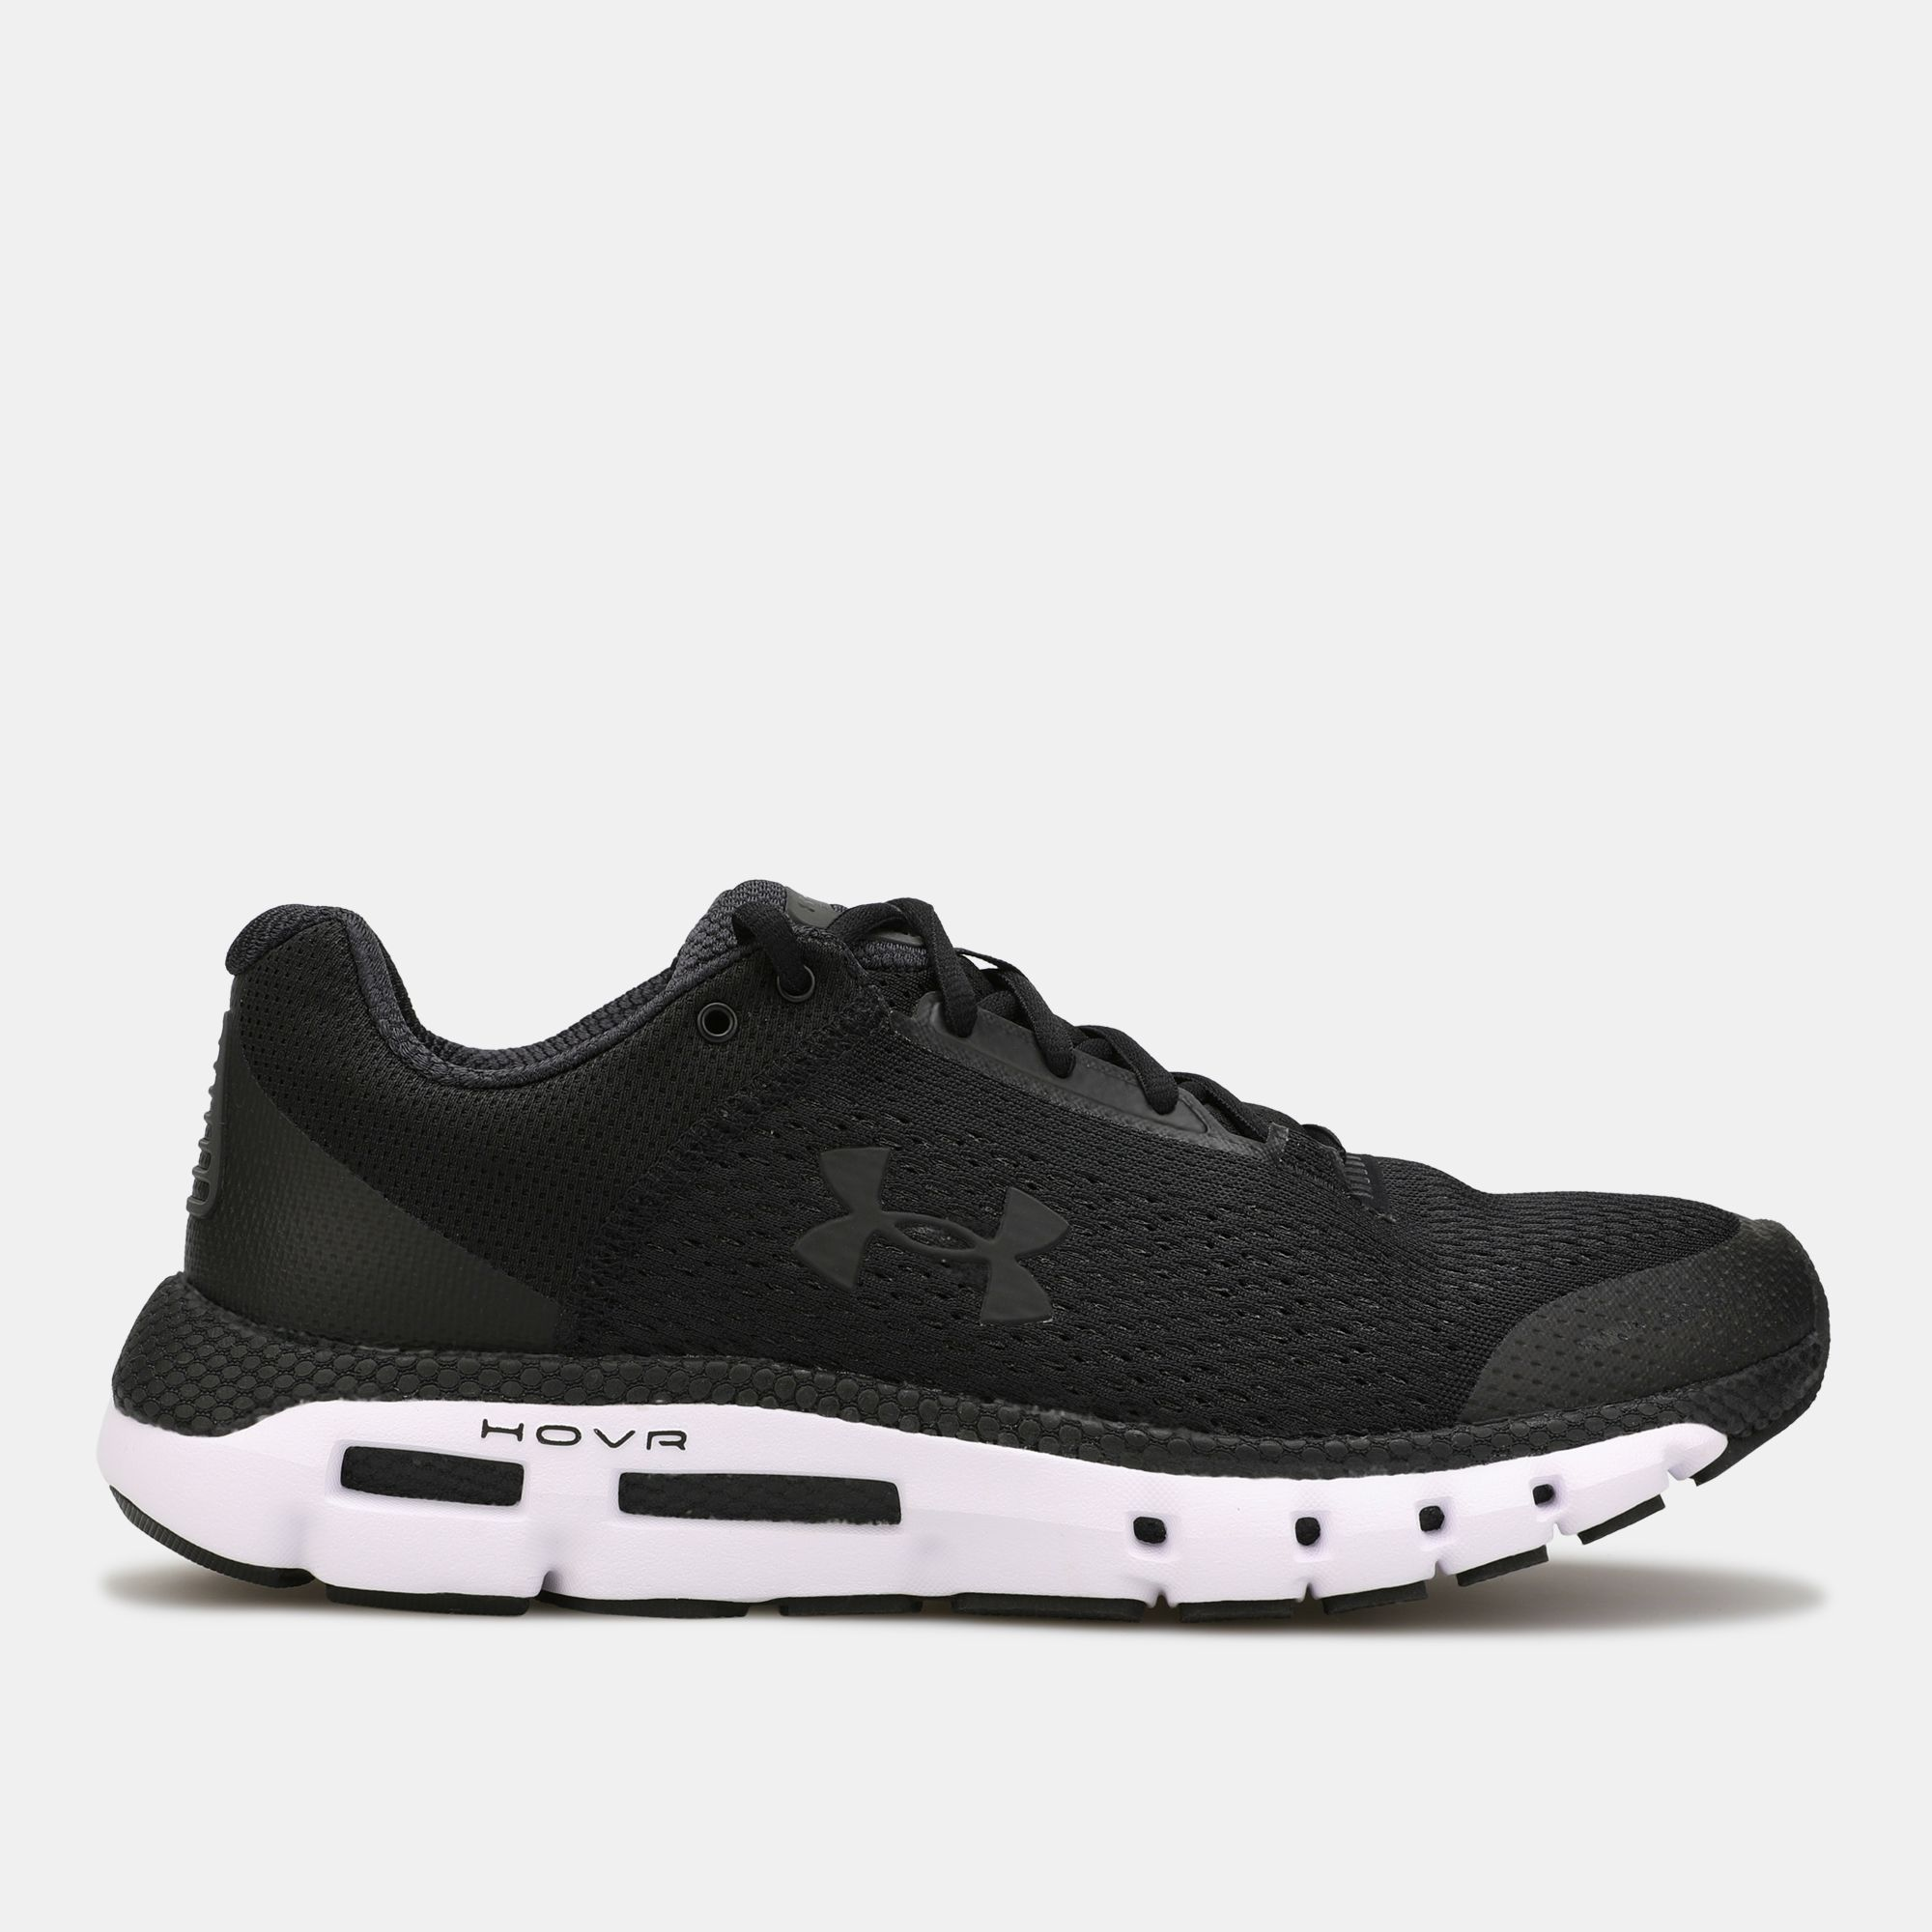 Under Armour Men's HOVR Infinite Connected Shoe